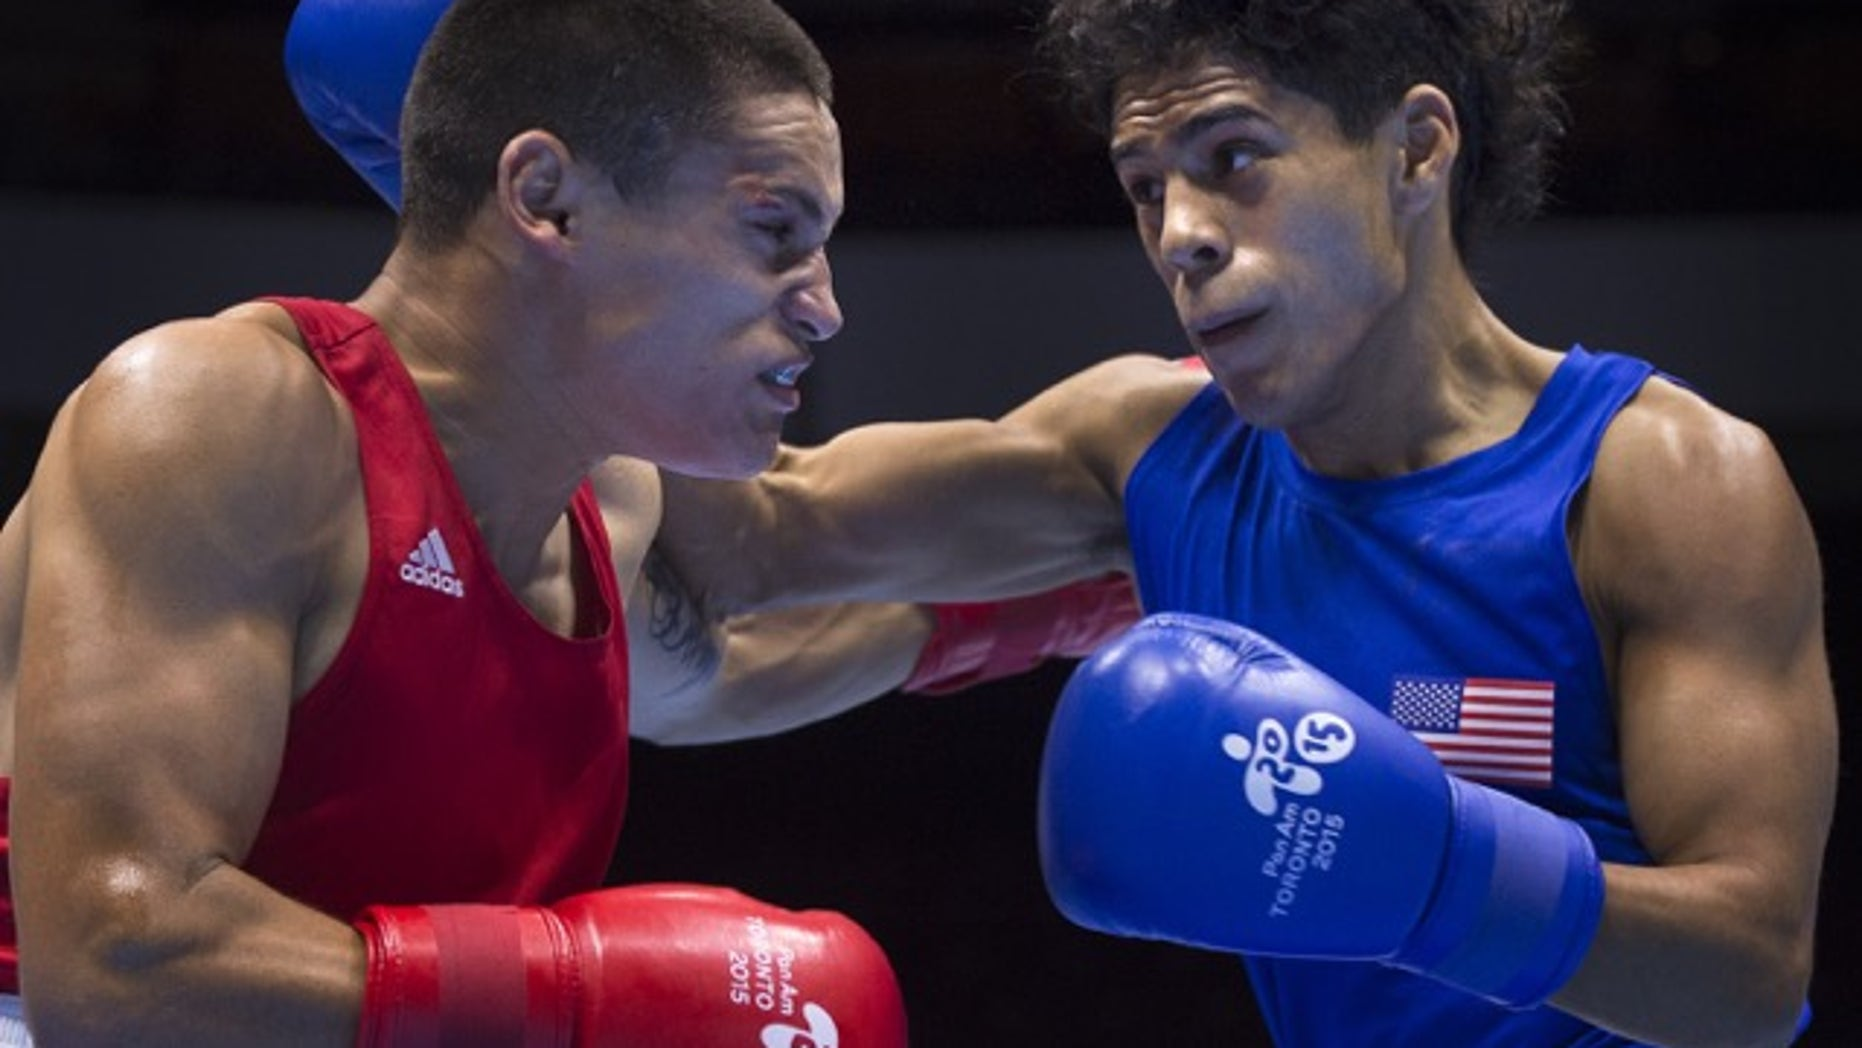 Antonio Vargas (R) in the Men's Fly (52kg) Semifinals Bout at the at the Pan American Games.